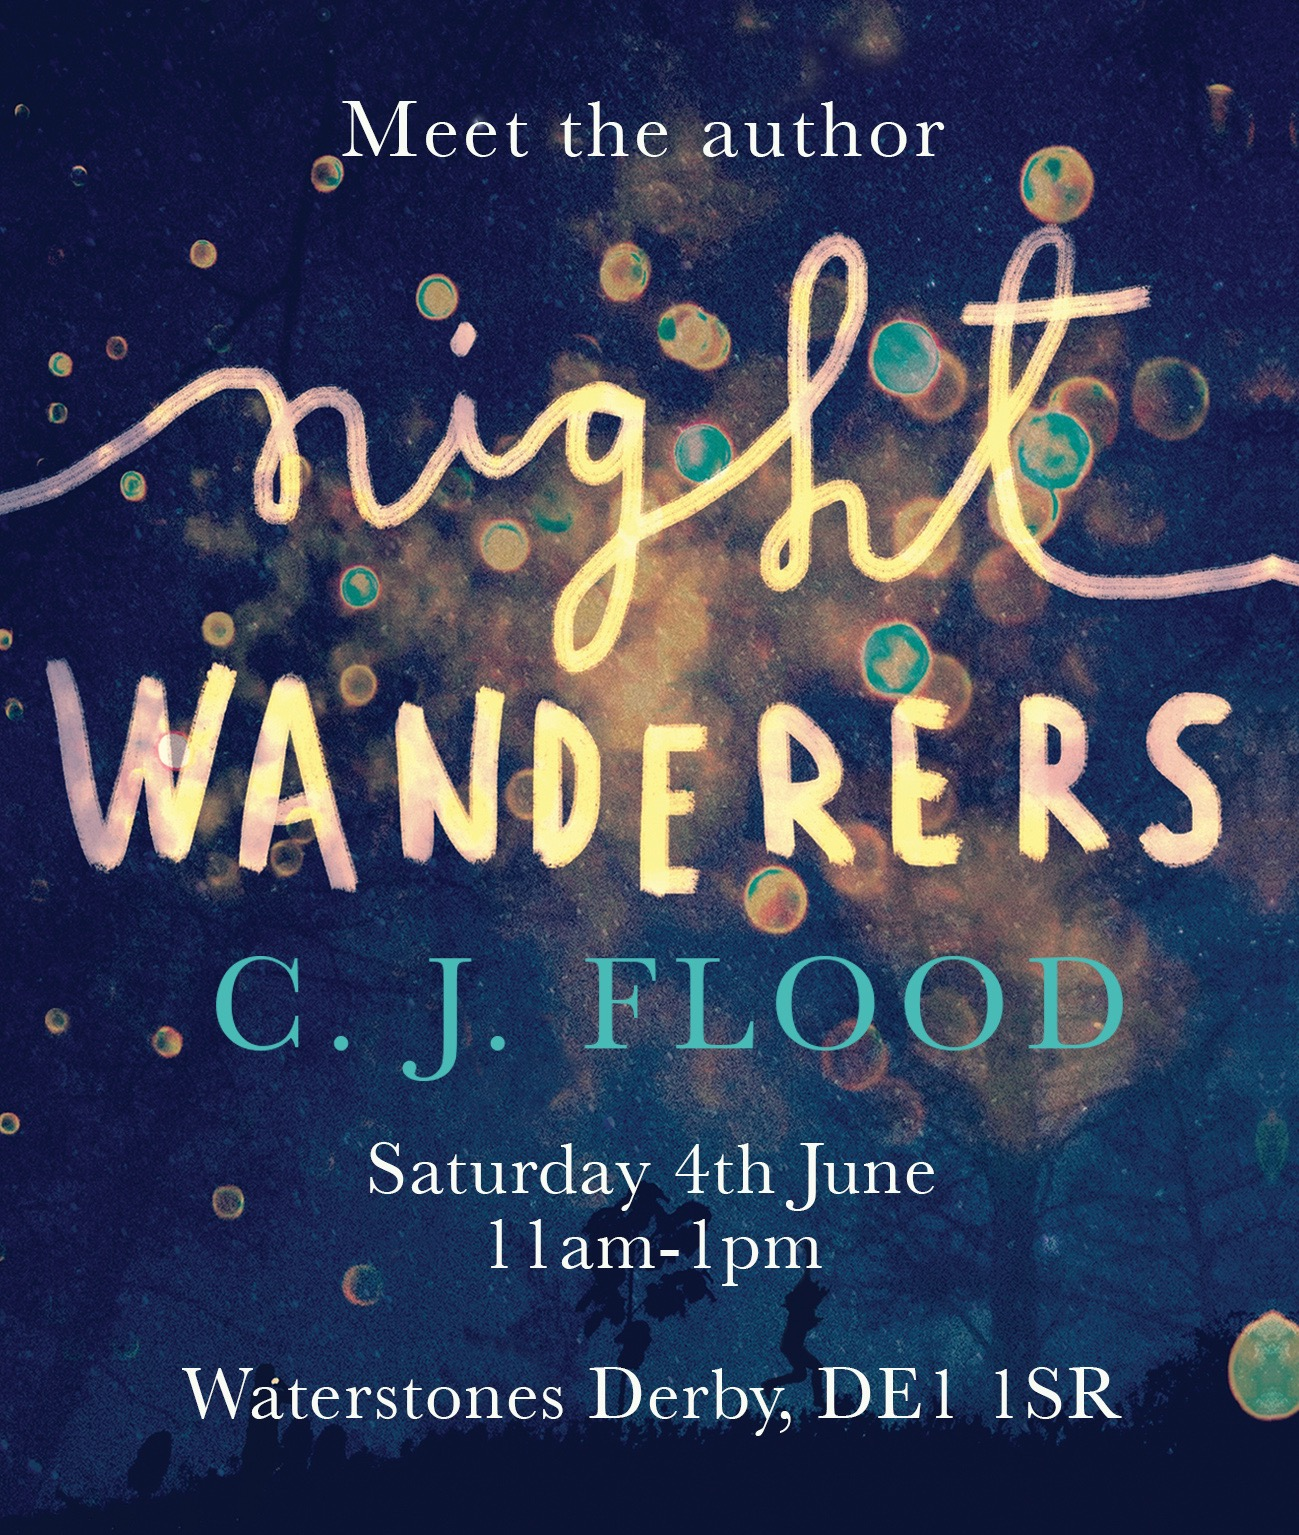 Cj flood 2016 and on saturday 4th june im signing books in derby waterstones as part of the derby book festival please come and see me if you can solutioingenieria Images